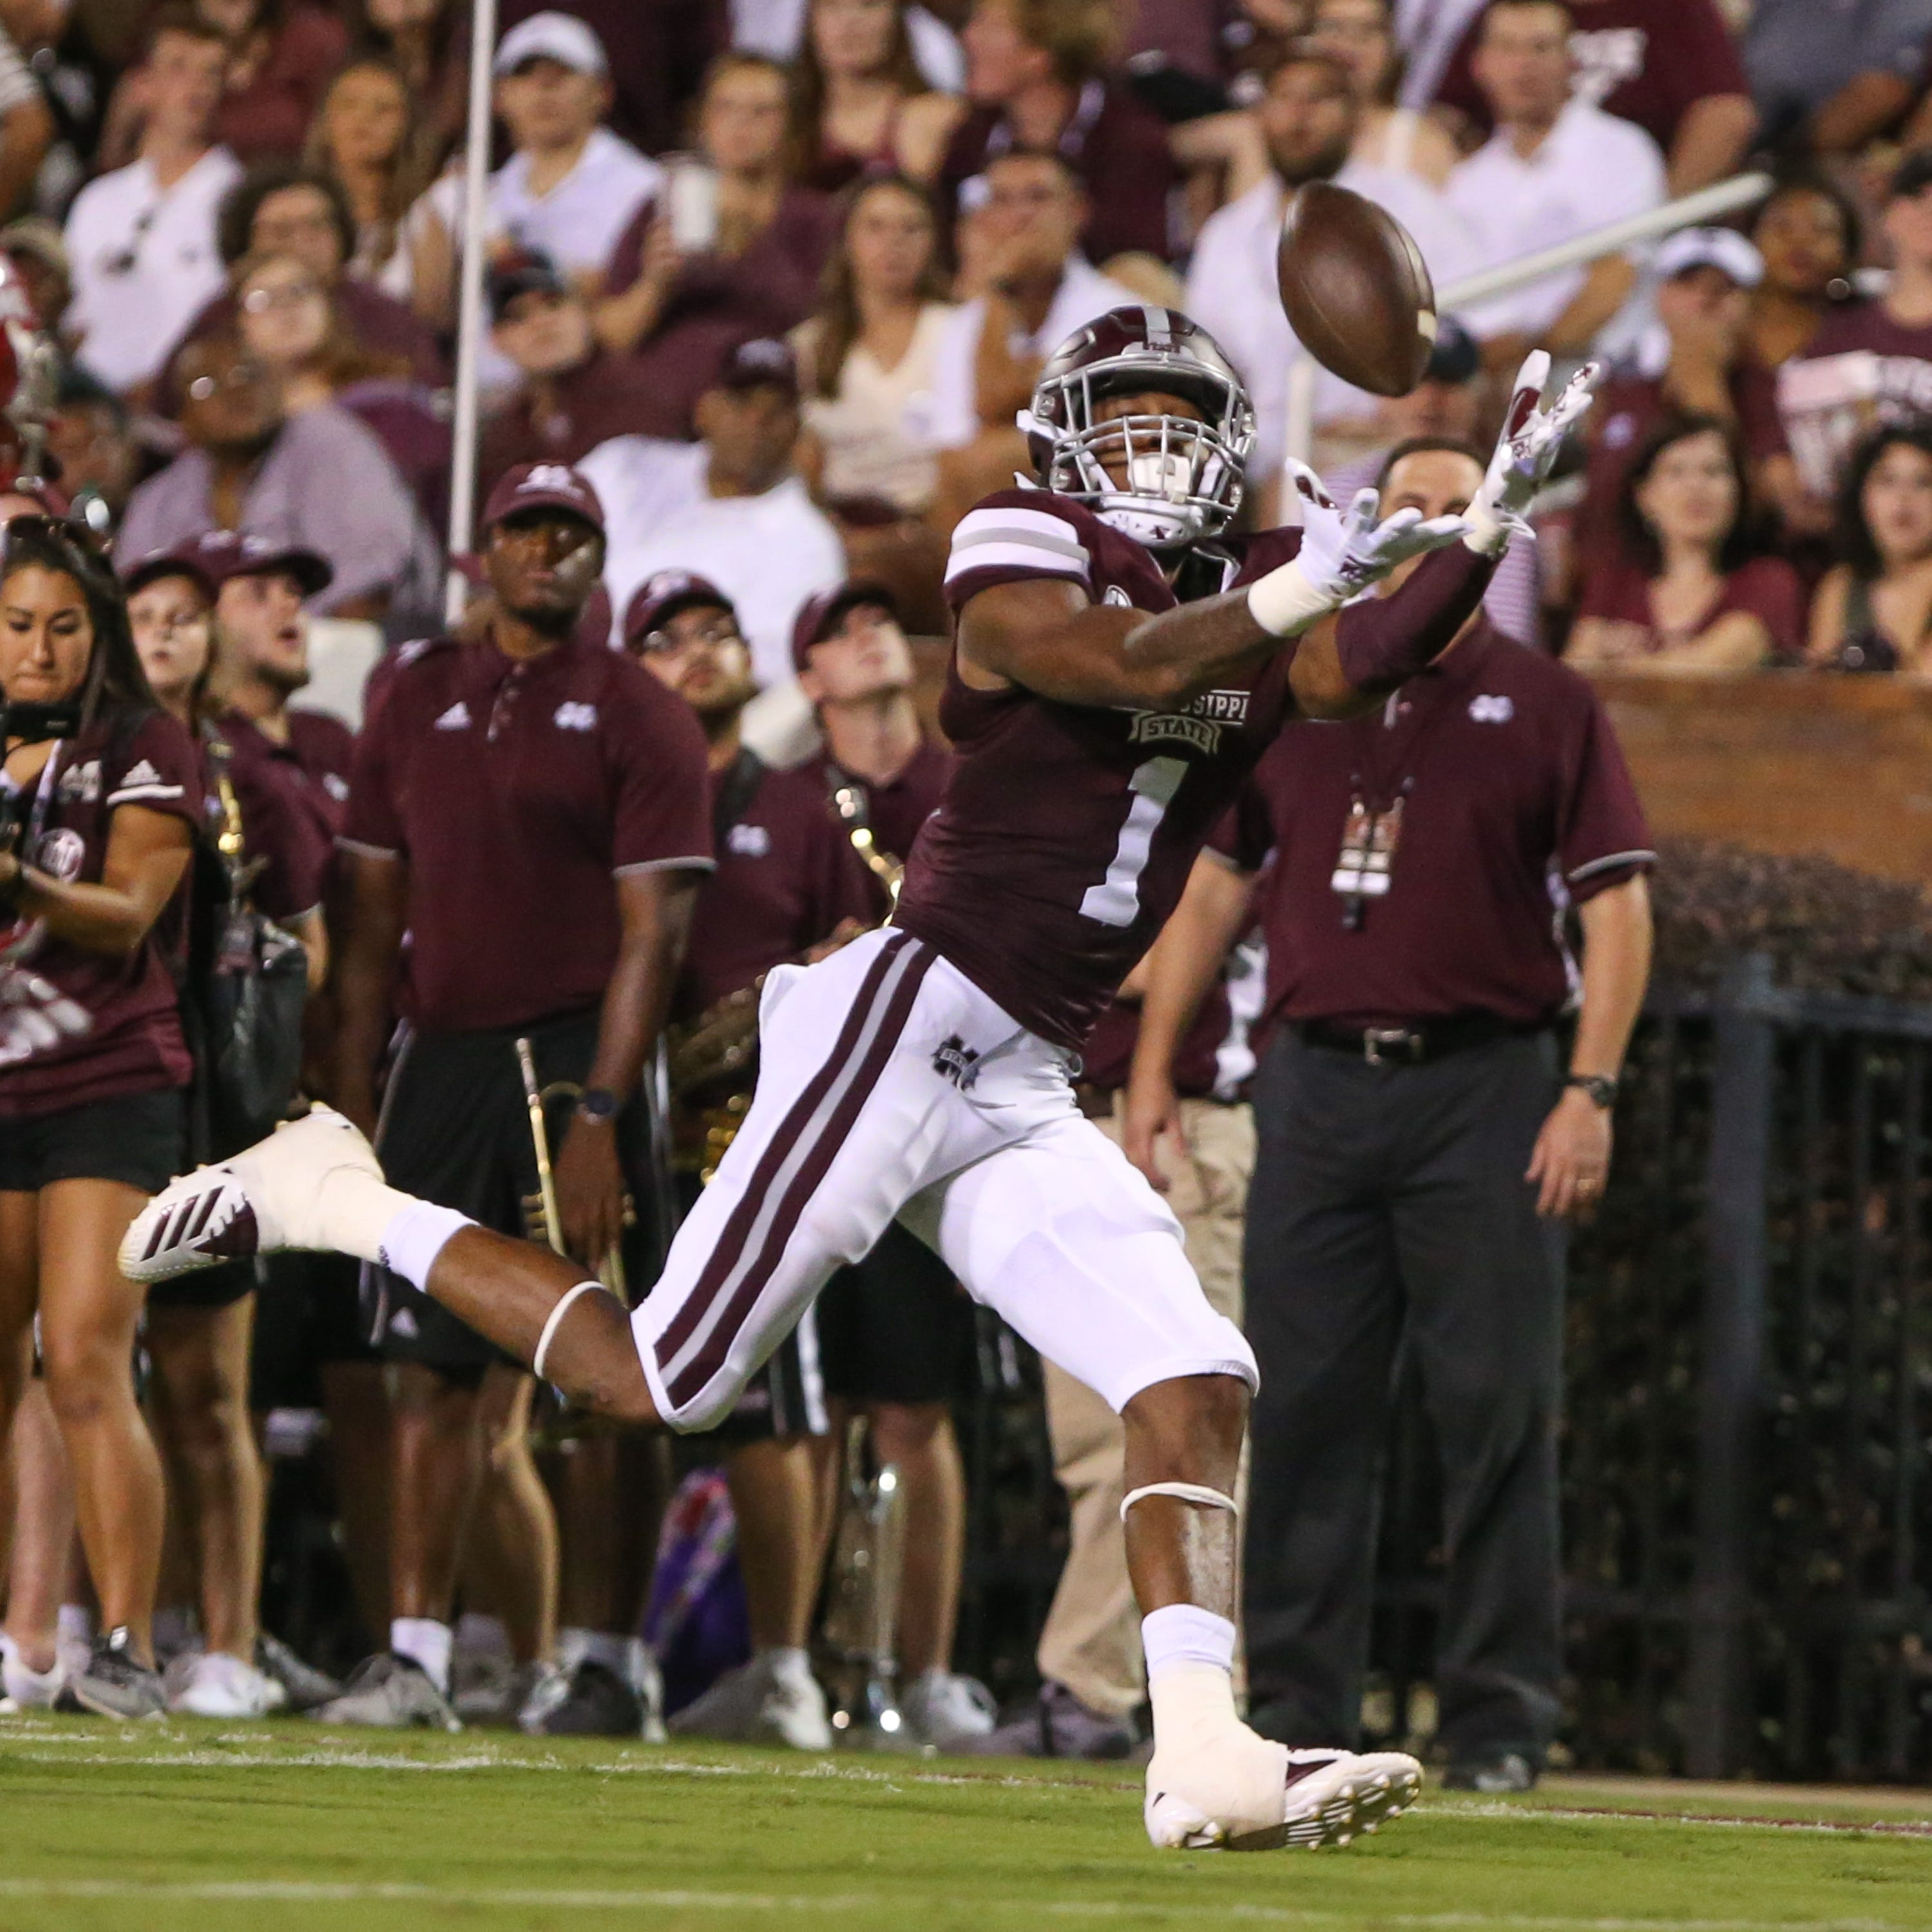 Mississippi State wide receiver Stephen Guidry is just getting started